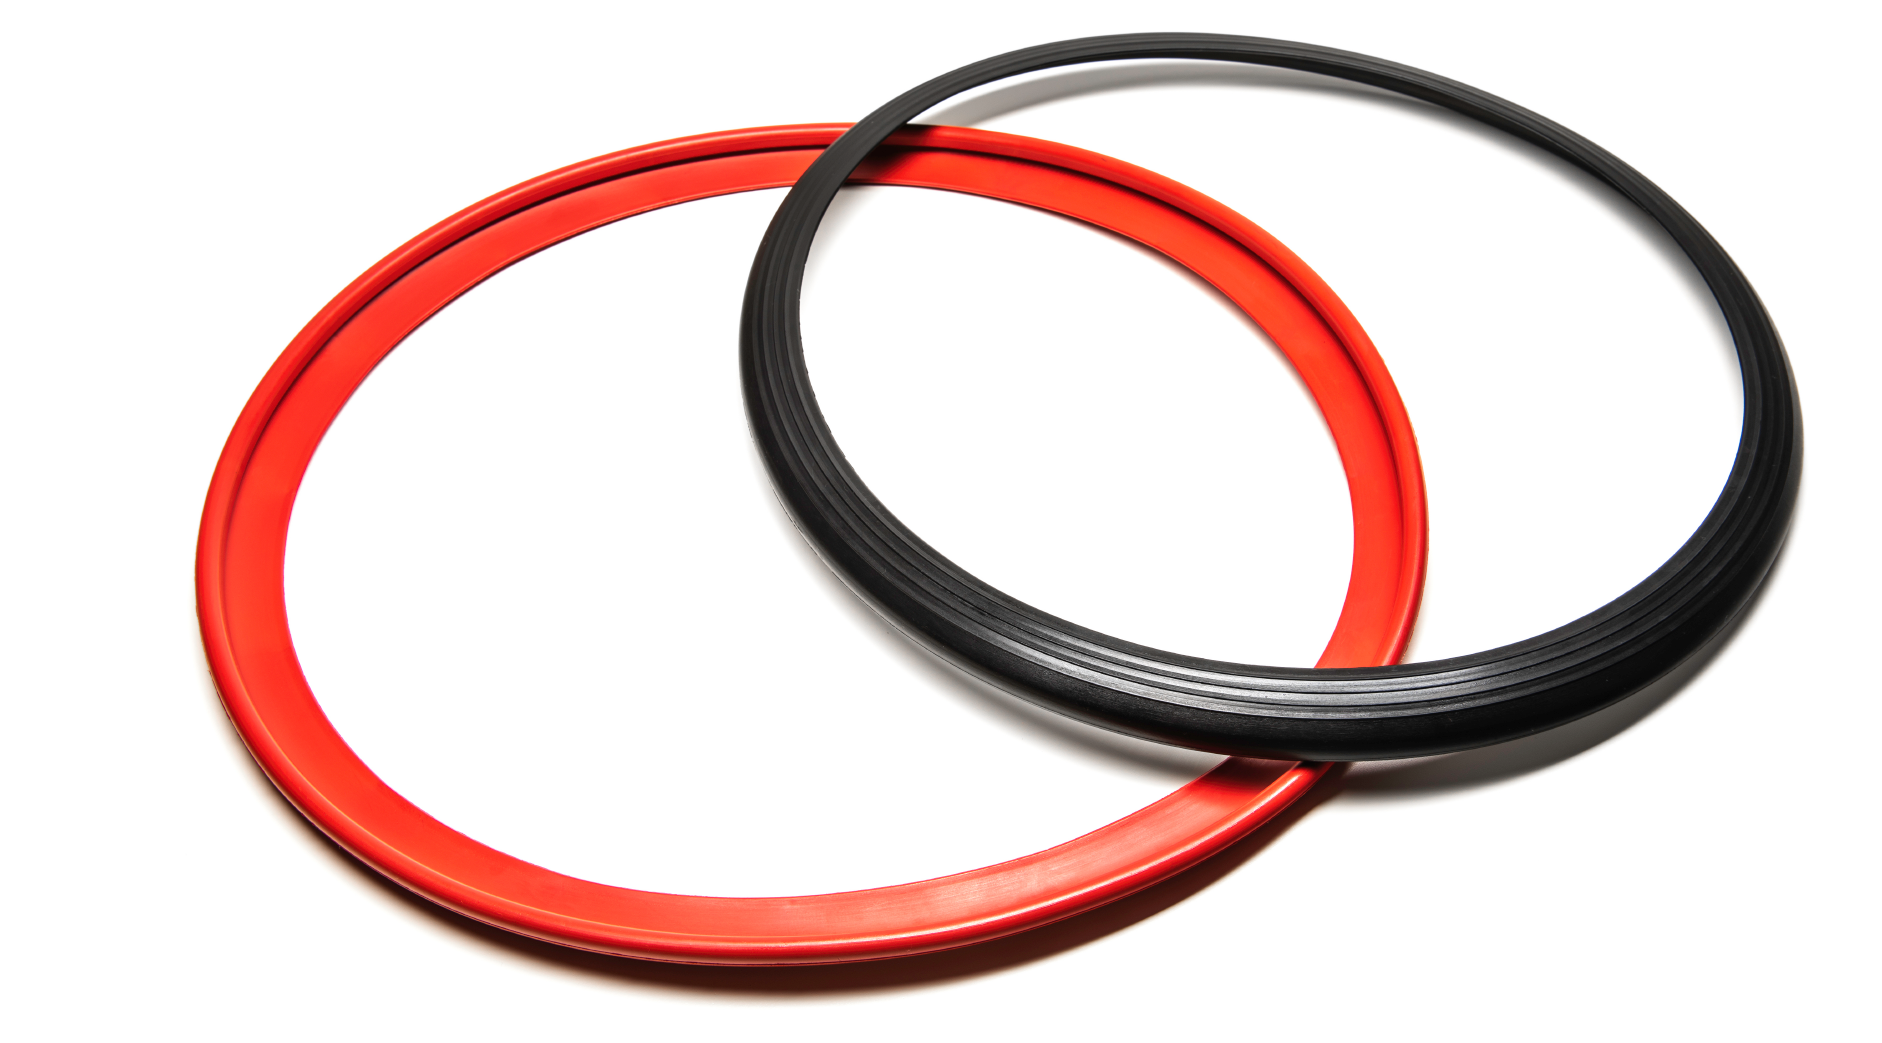 Overlapping black and red continuous rubber RIMFINITY product before fitting, on a white background